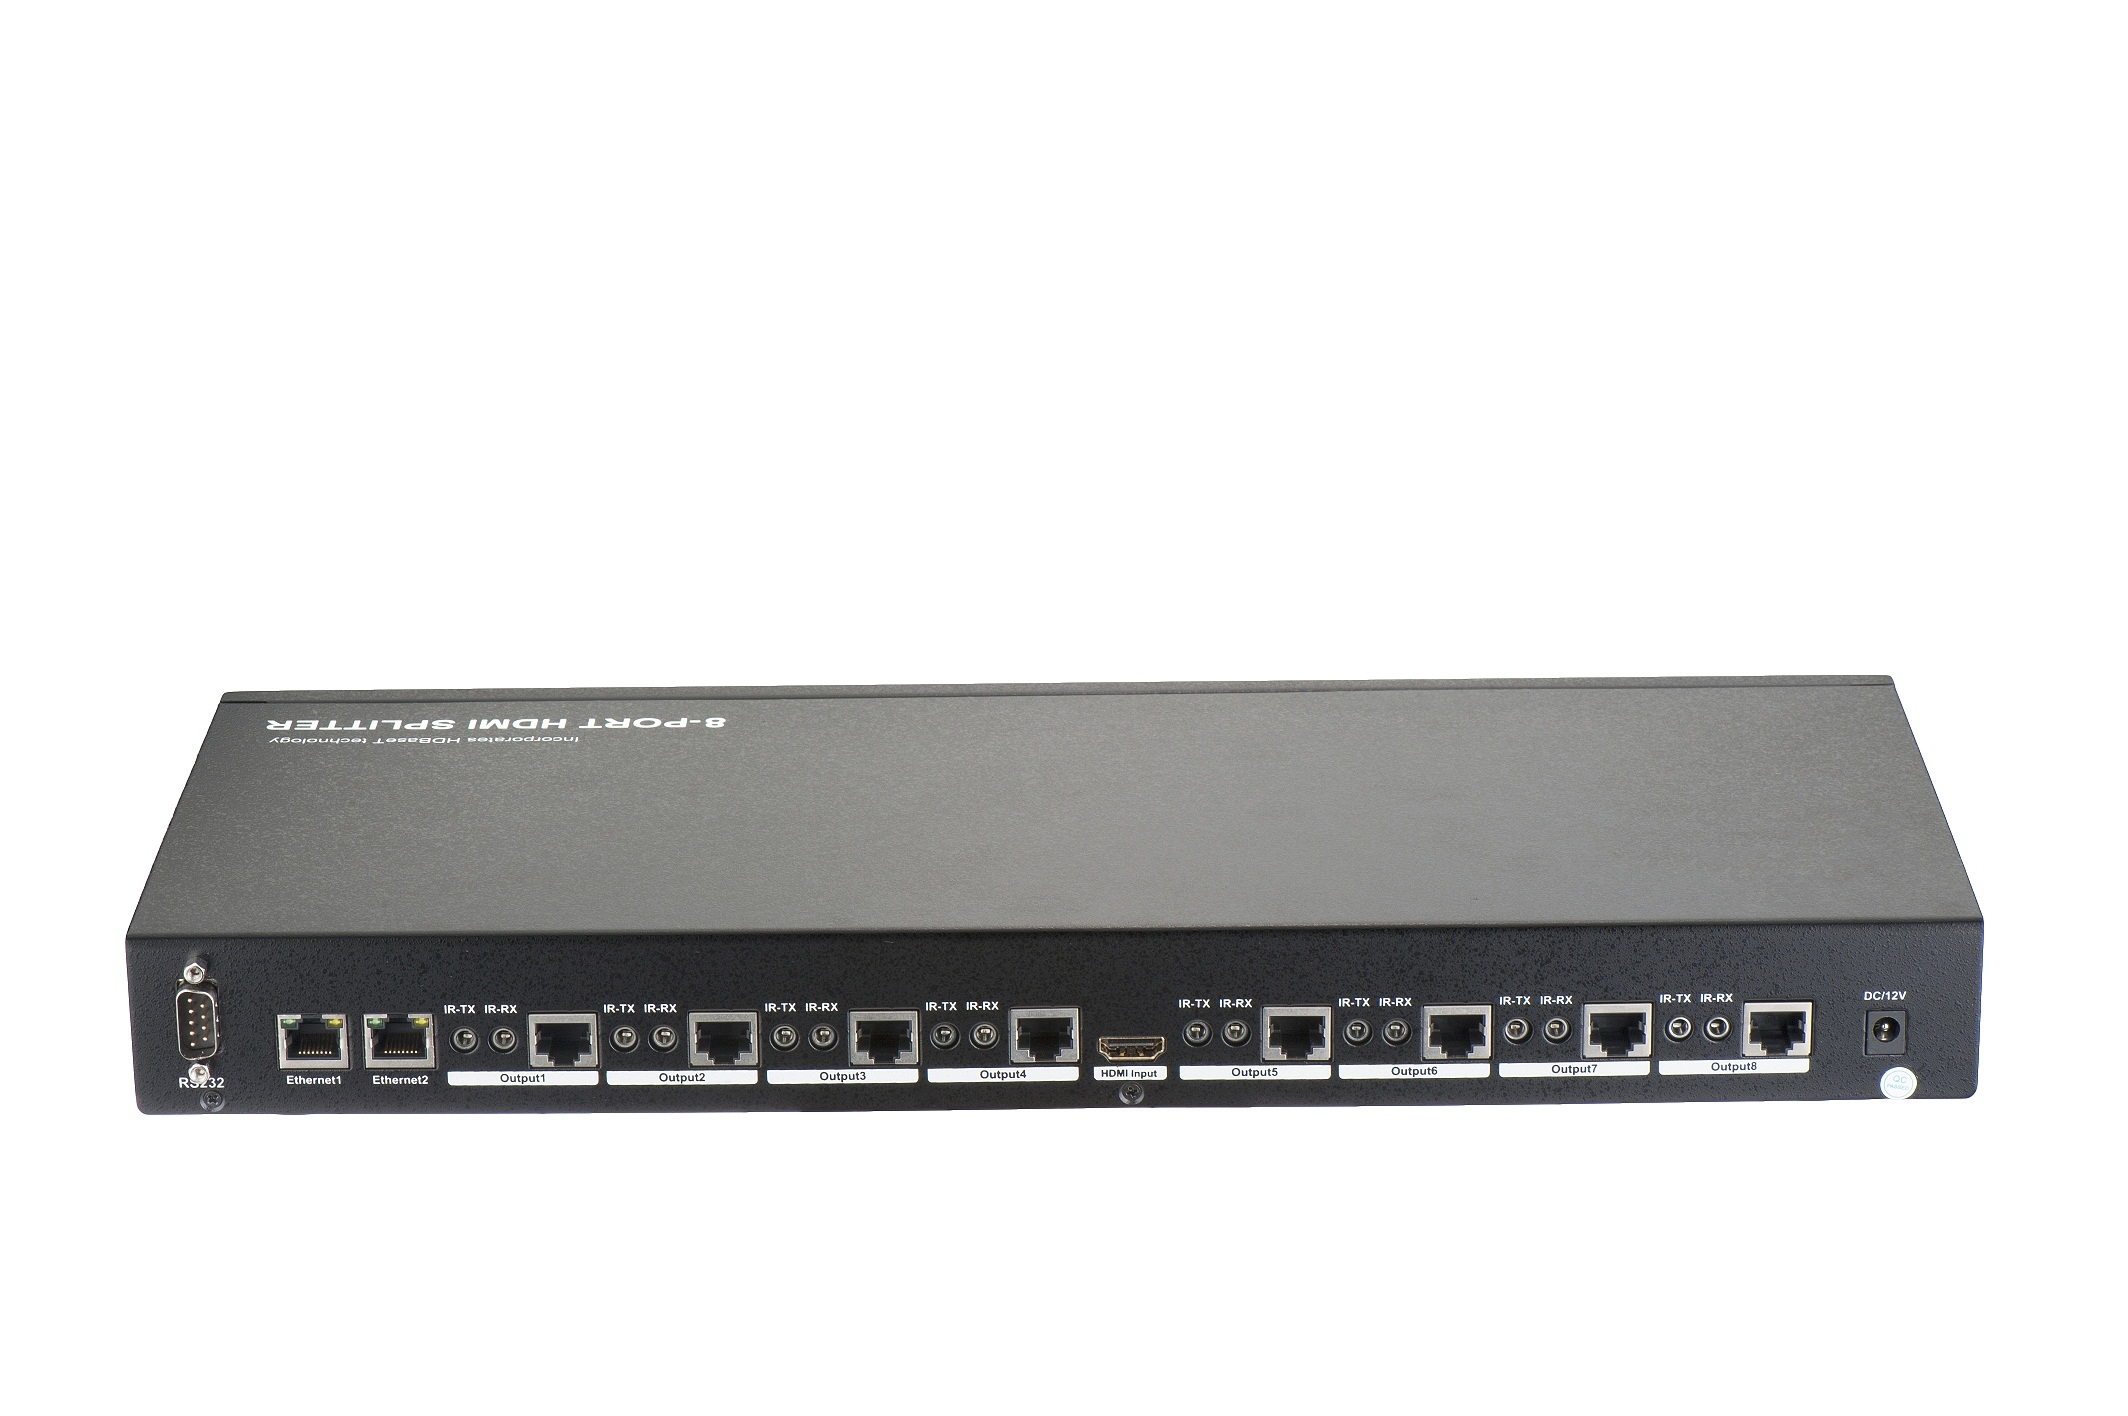 100m 1x8 HDBaseT Splitter , Ethernet, RS232, Bi-Direction IR, CEC, 4Kx2K